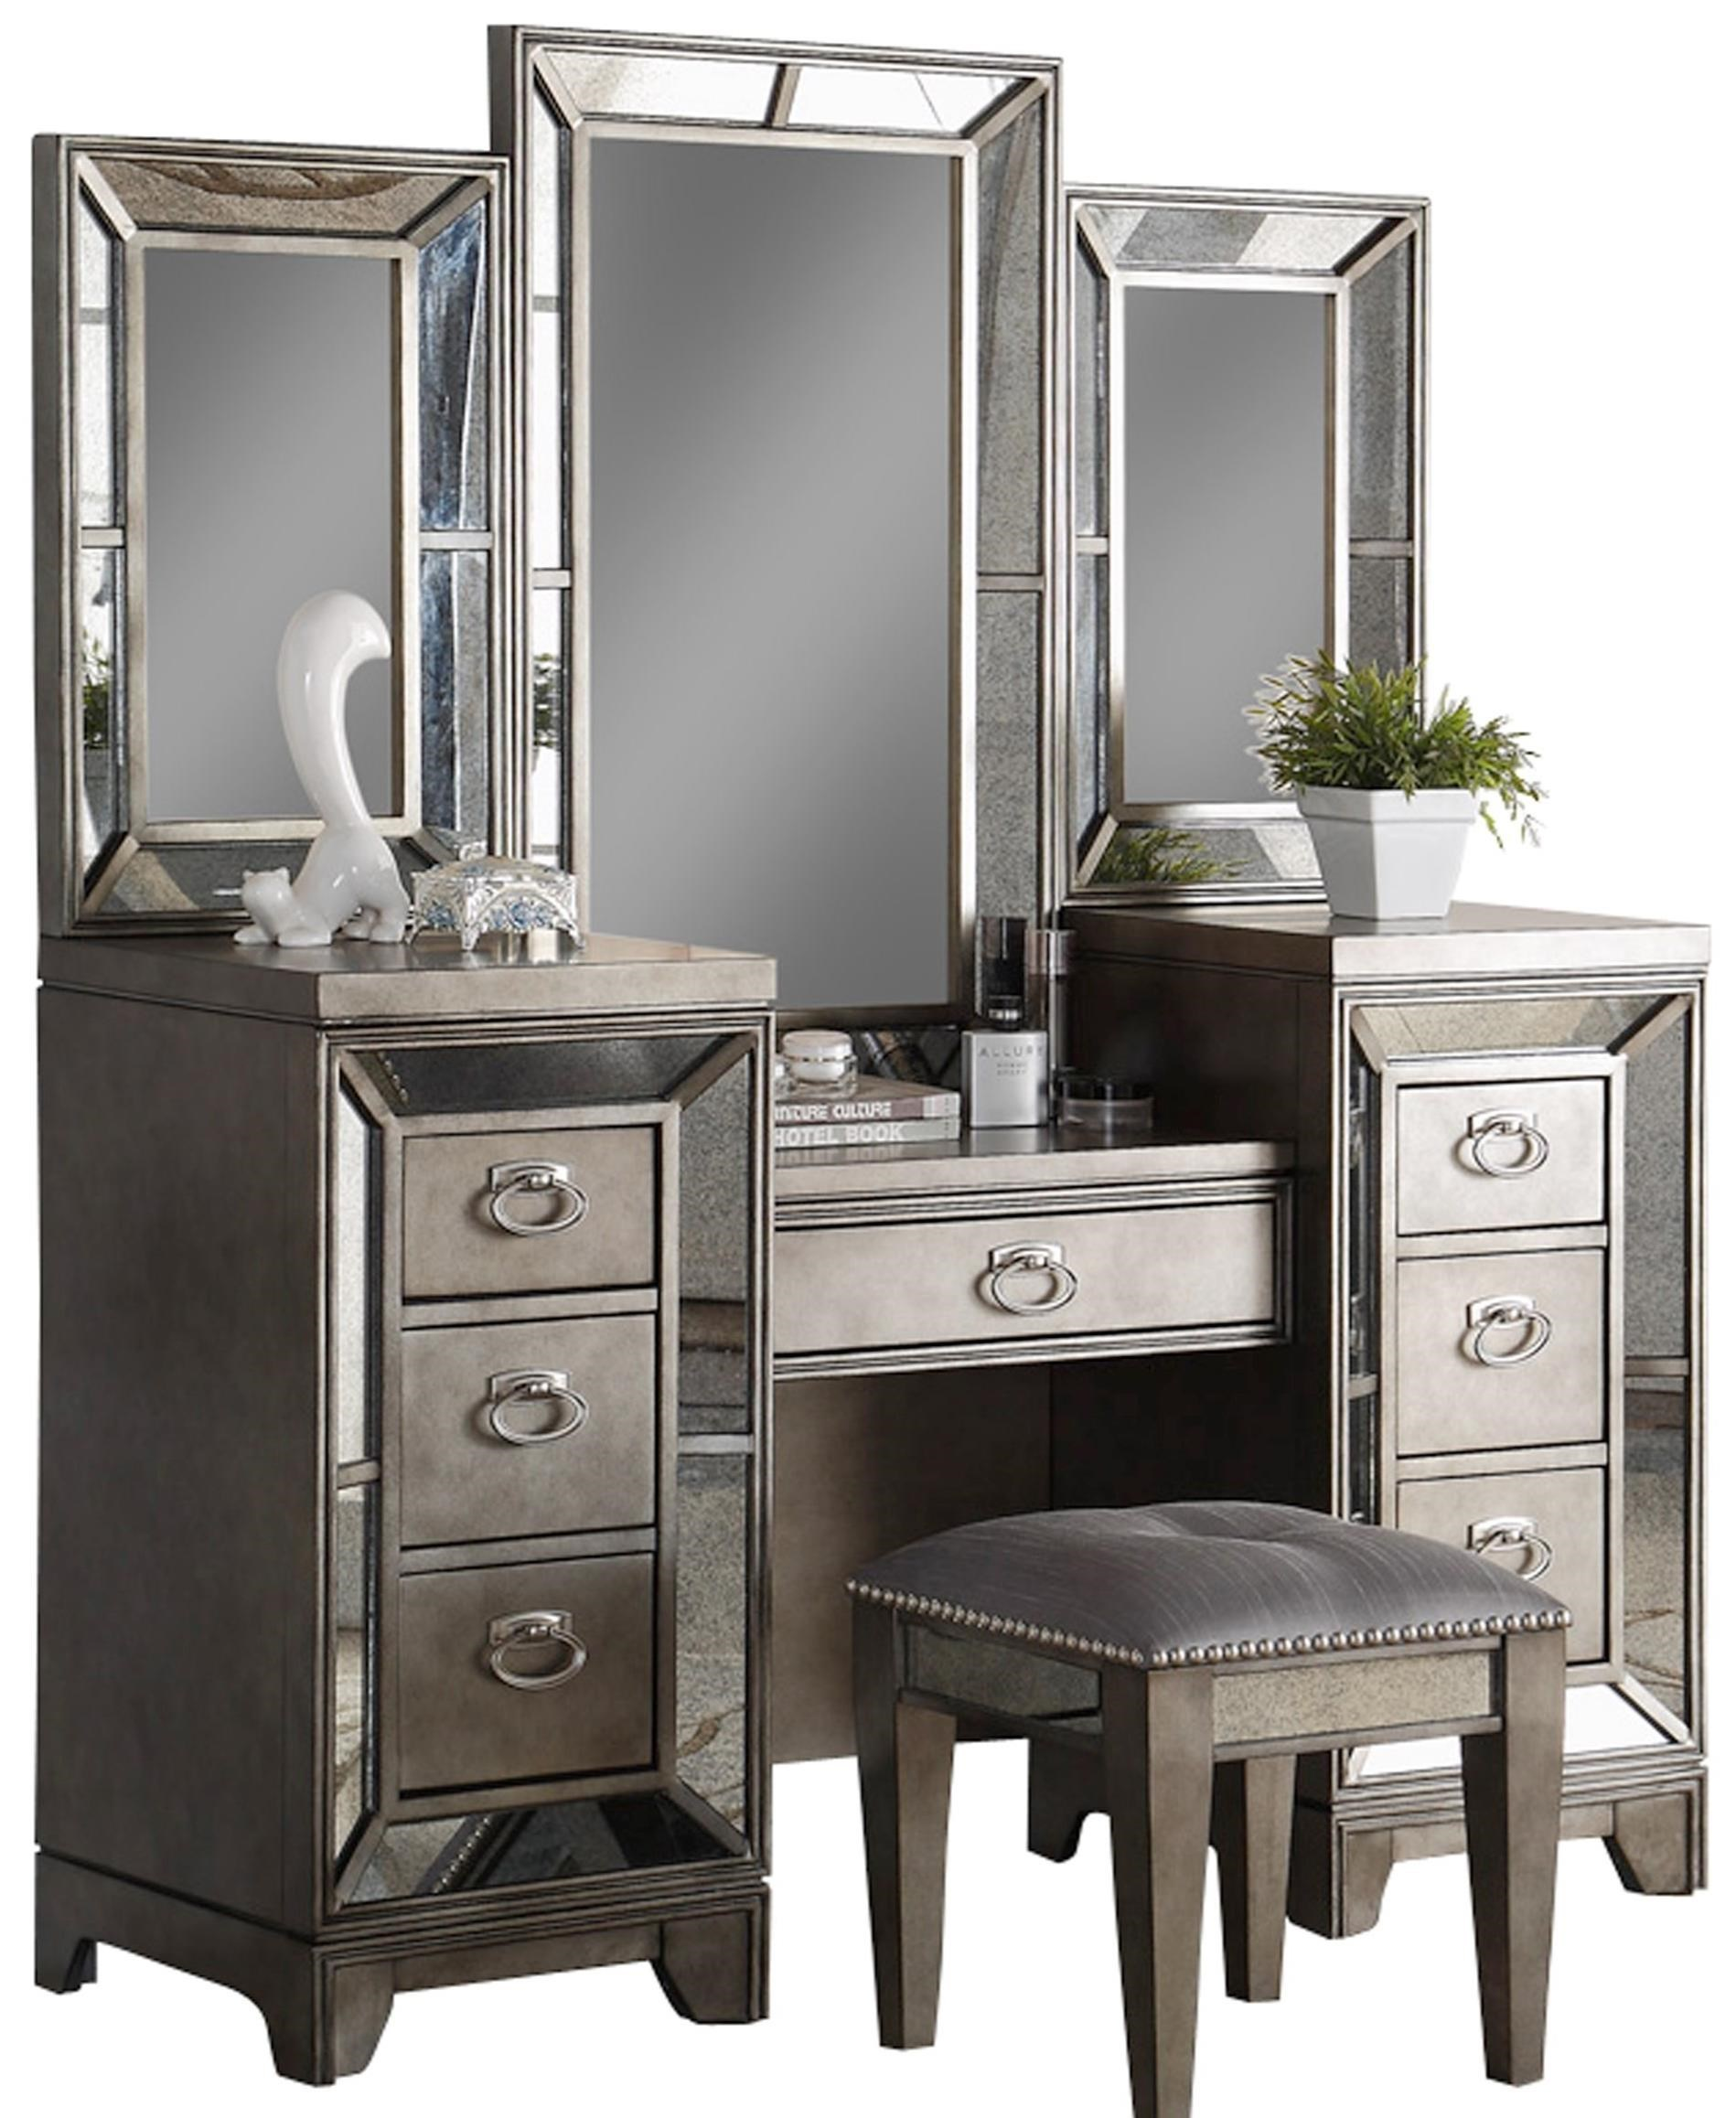 Avalon Furniture Lenox Antique Mirror Vanity